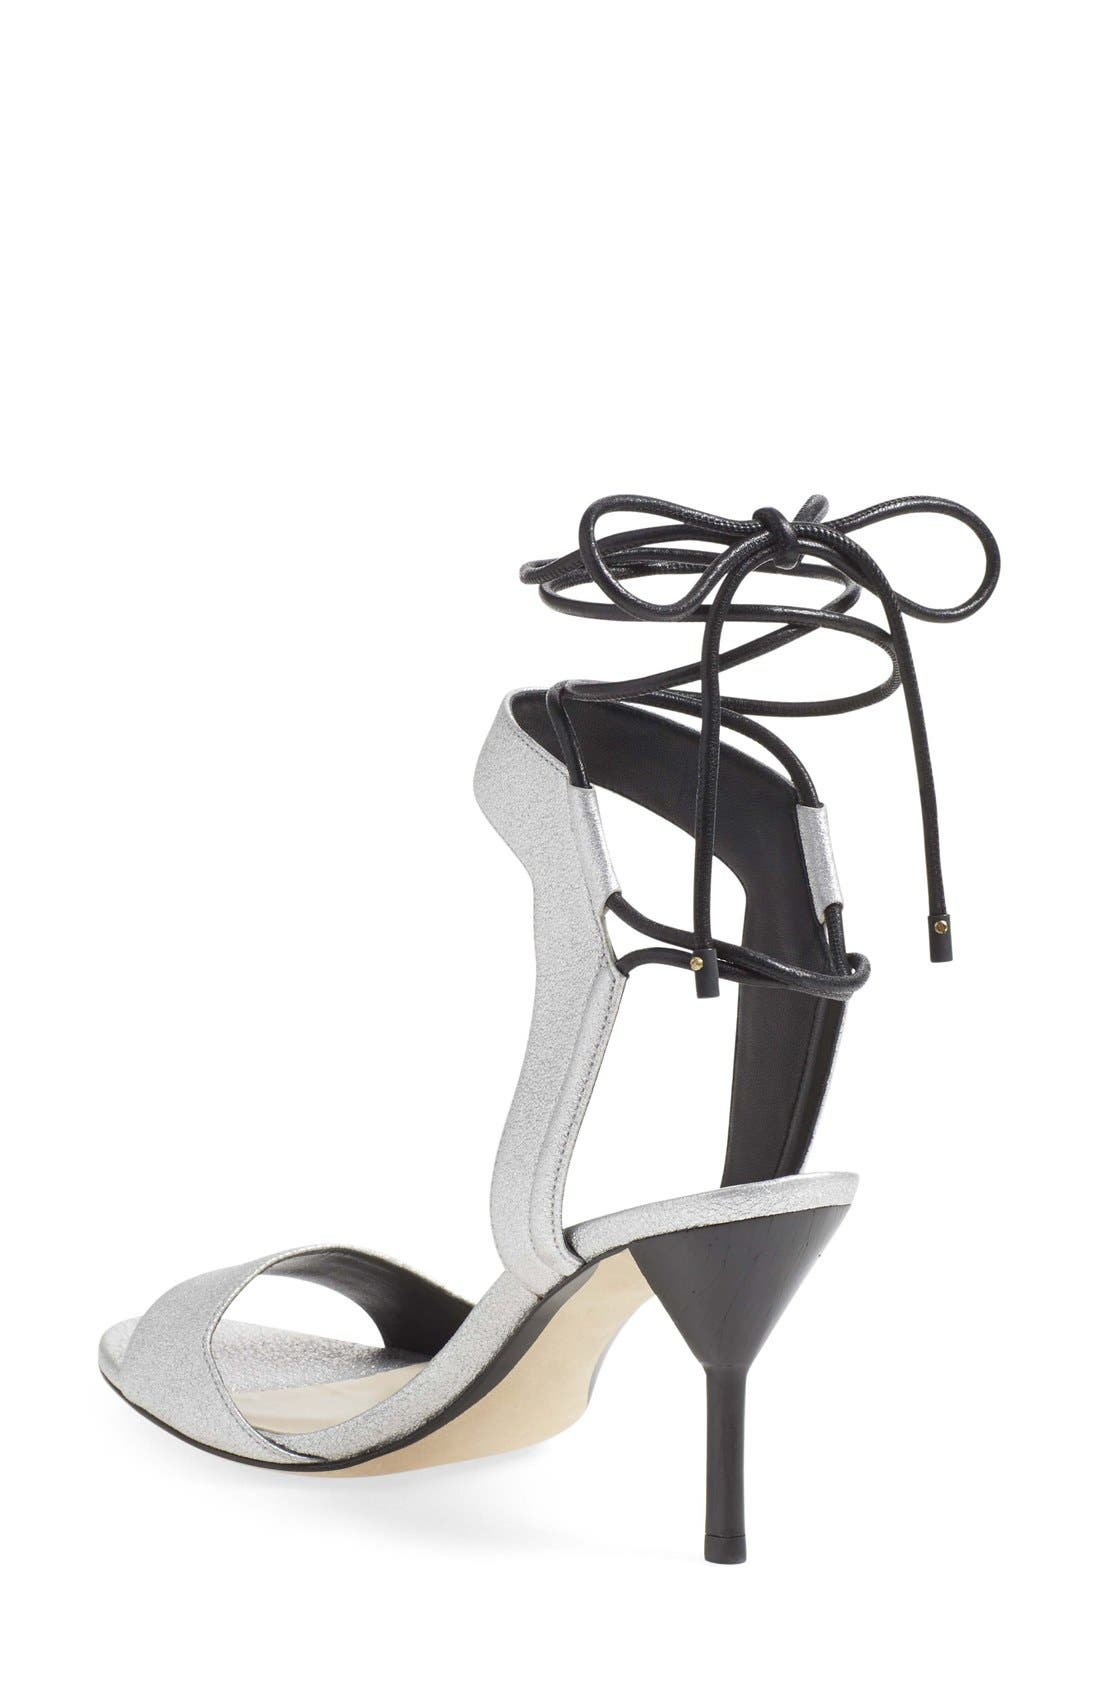 Alternate Image 2  - 3.1 Phillip Lim 'Martini' Wraparound Ankle Strap Sandal (Women)